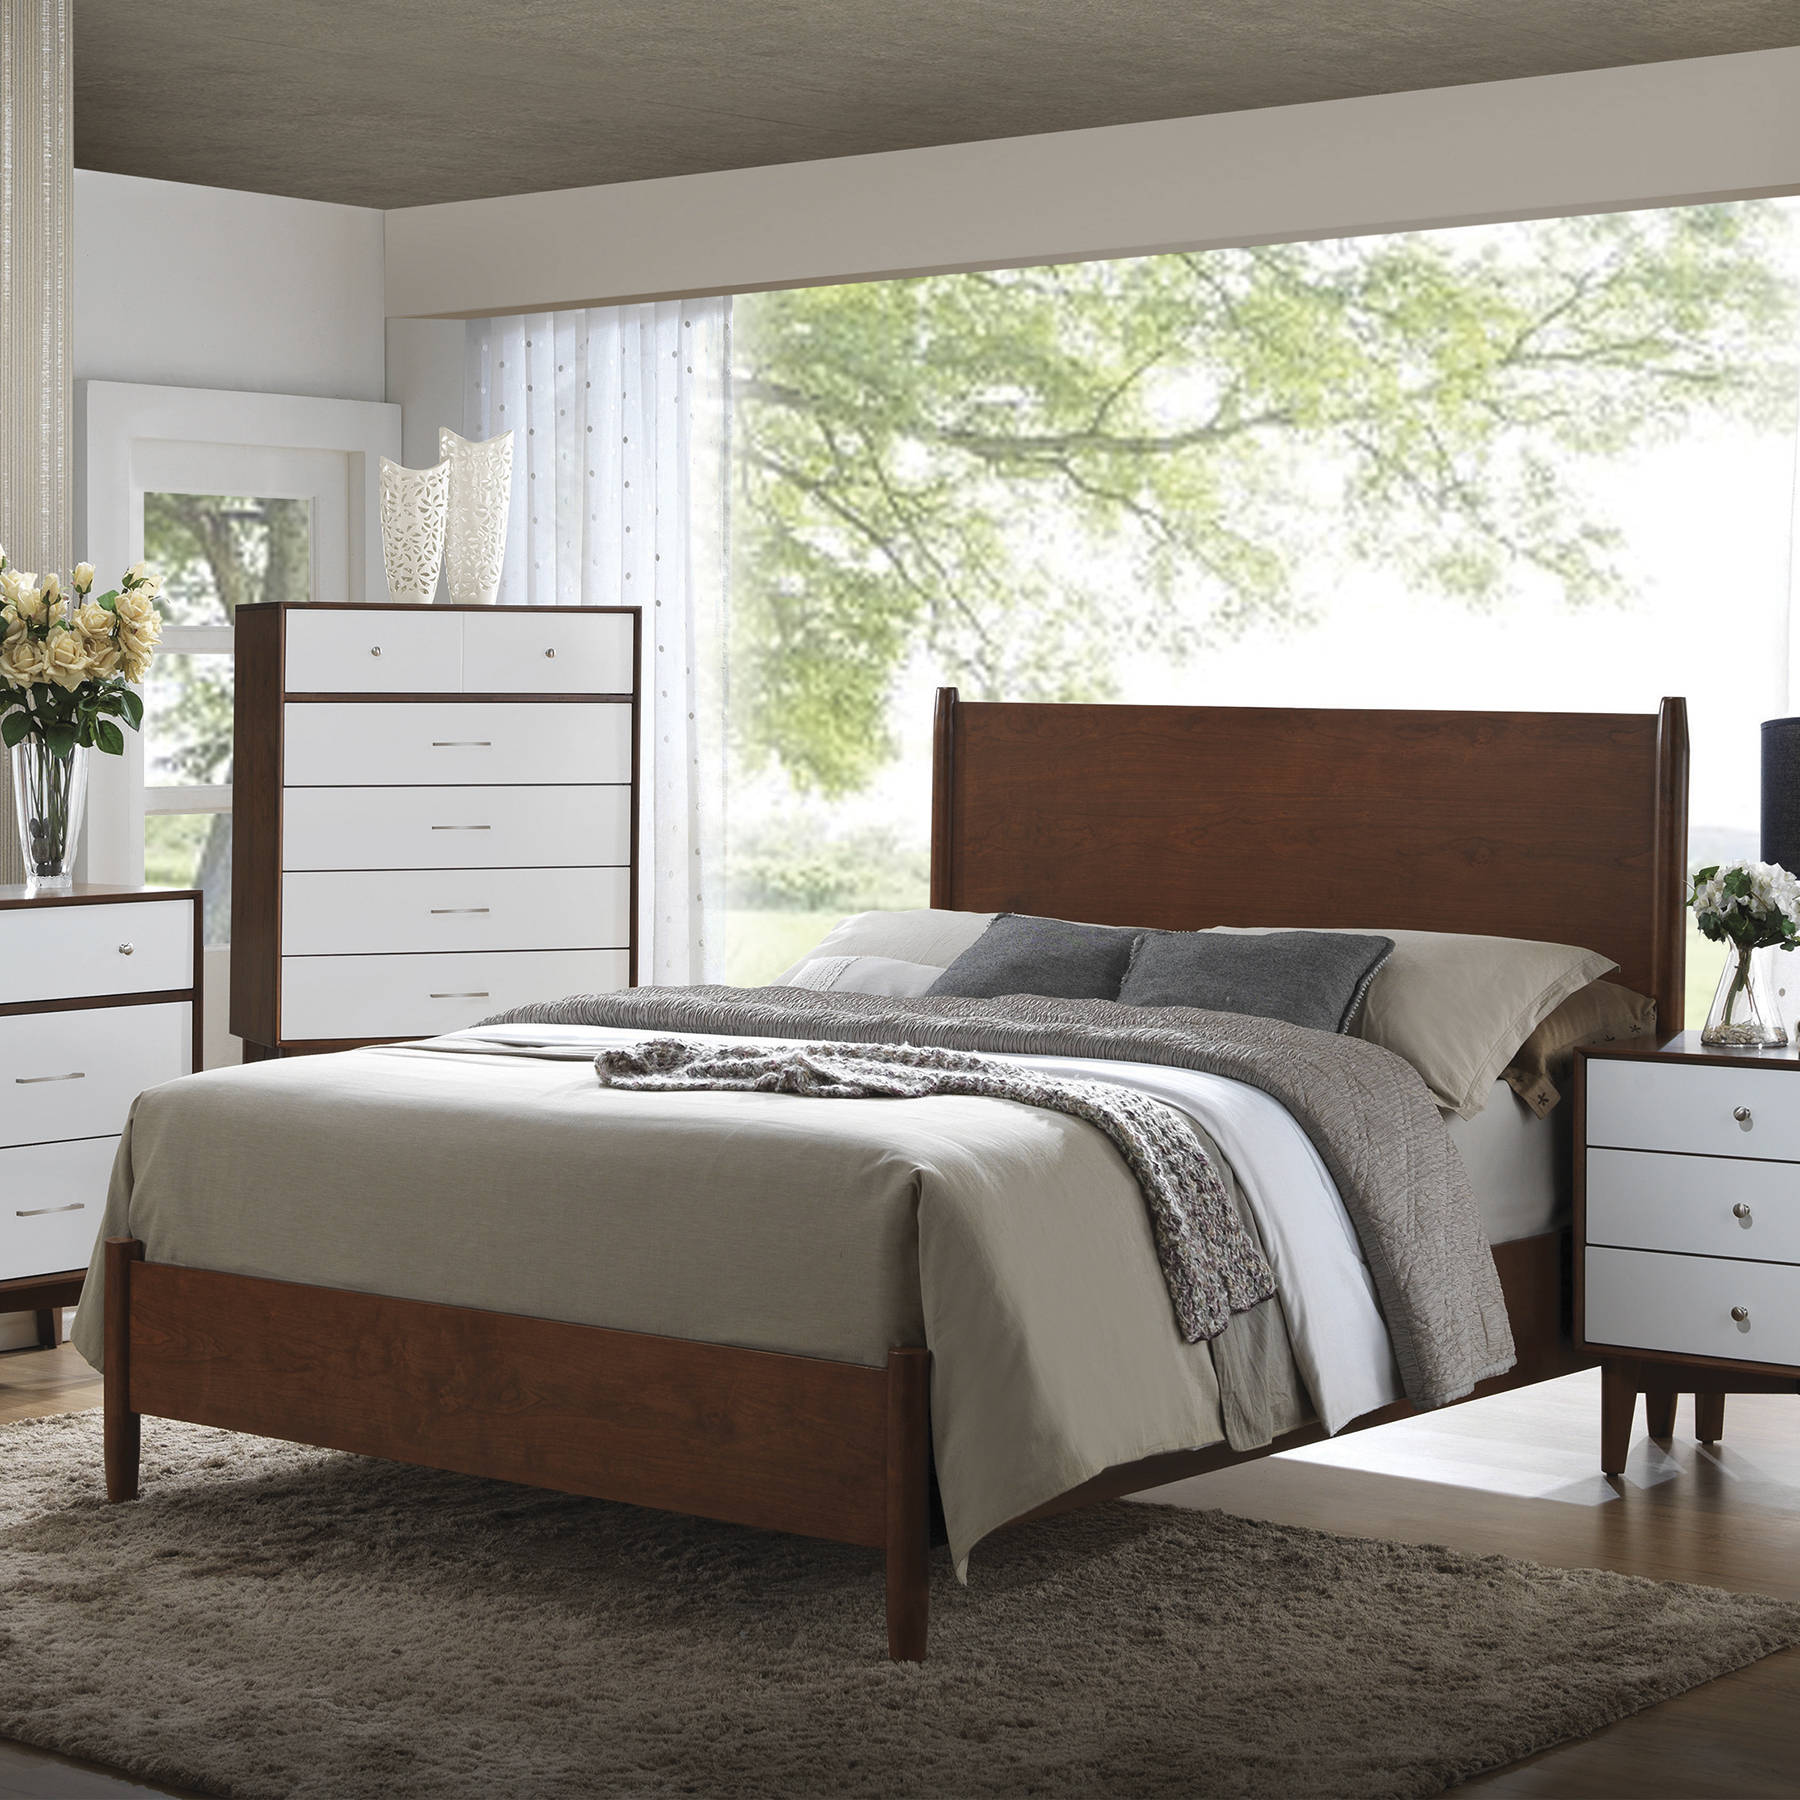 also with queen under cheap sets set trends ideas bedroom modern bedrooms furniture fabulous